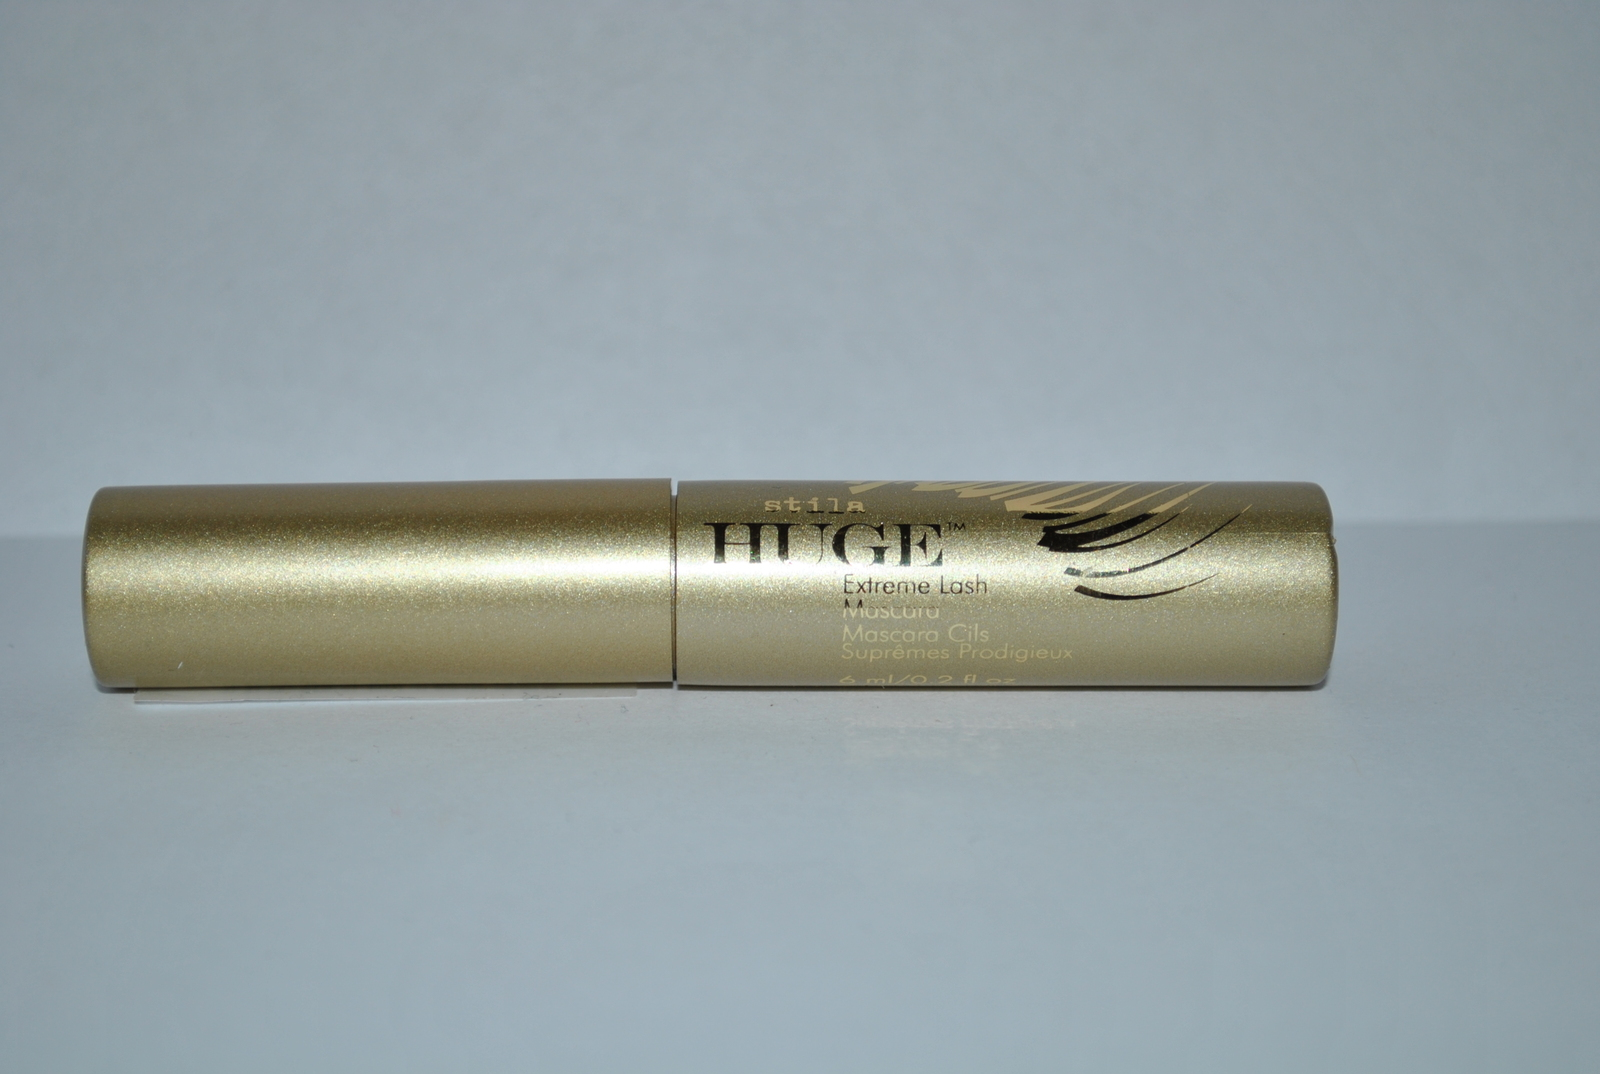 Primary image for Stila HUGE Extreme Lash Mascara 0.2 Fl oz / 6 ml - travel size